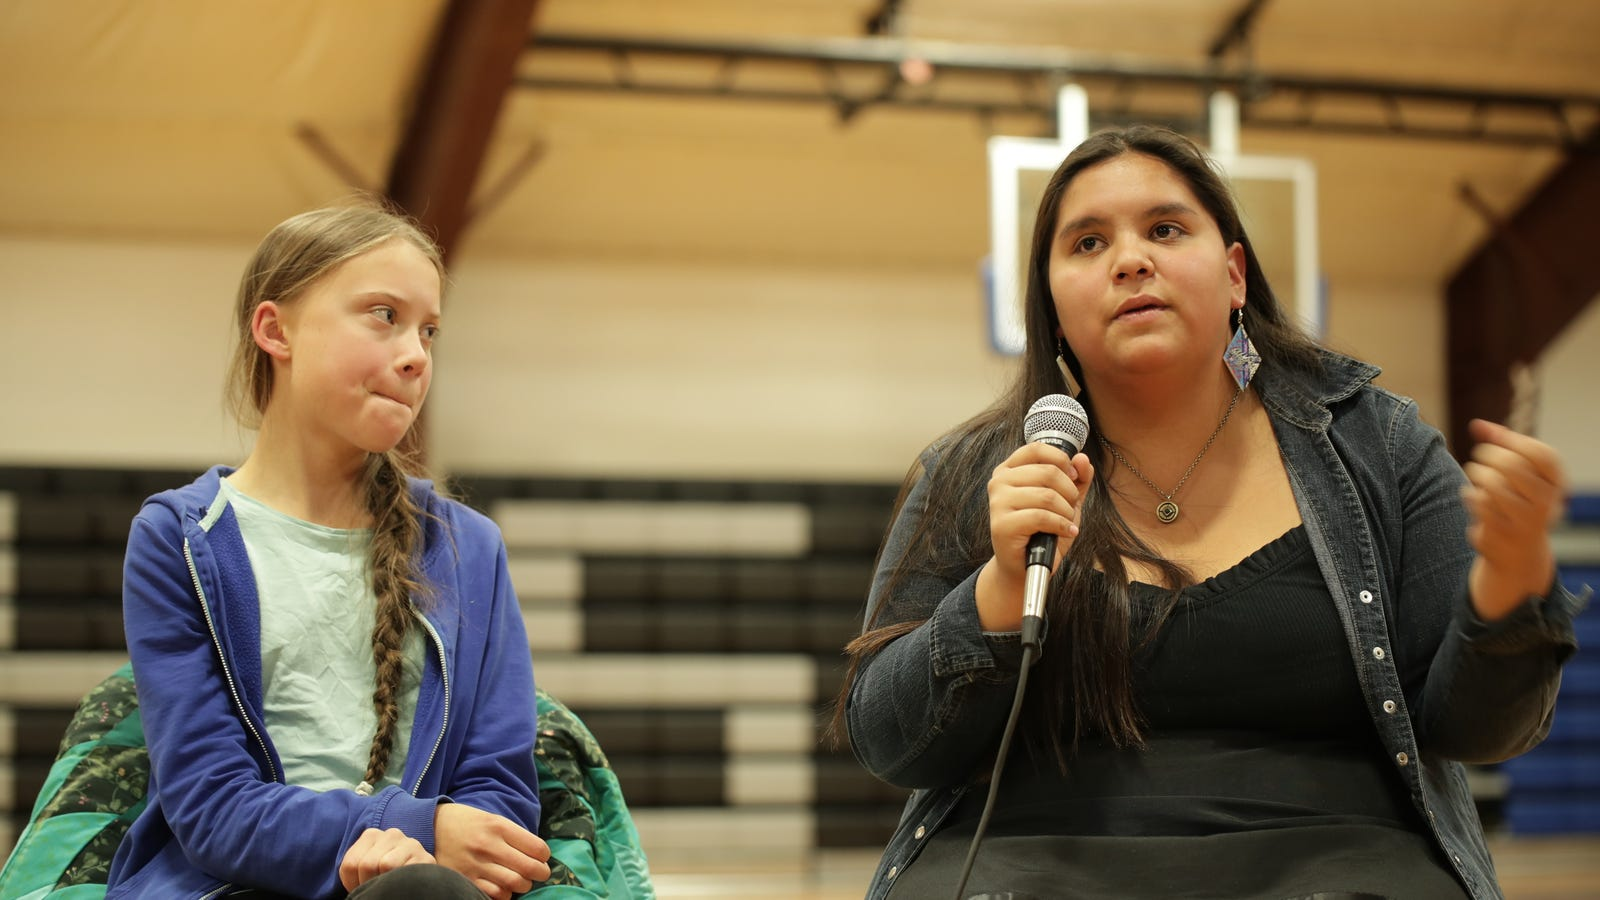 Greta Thunberg Heads to Standing Rock to Support Indigenous Activists